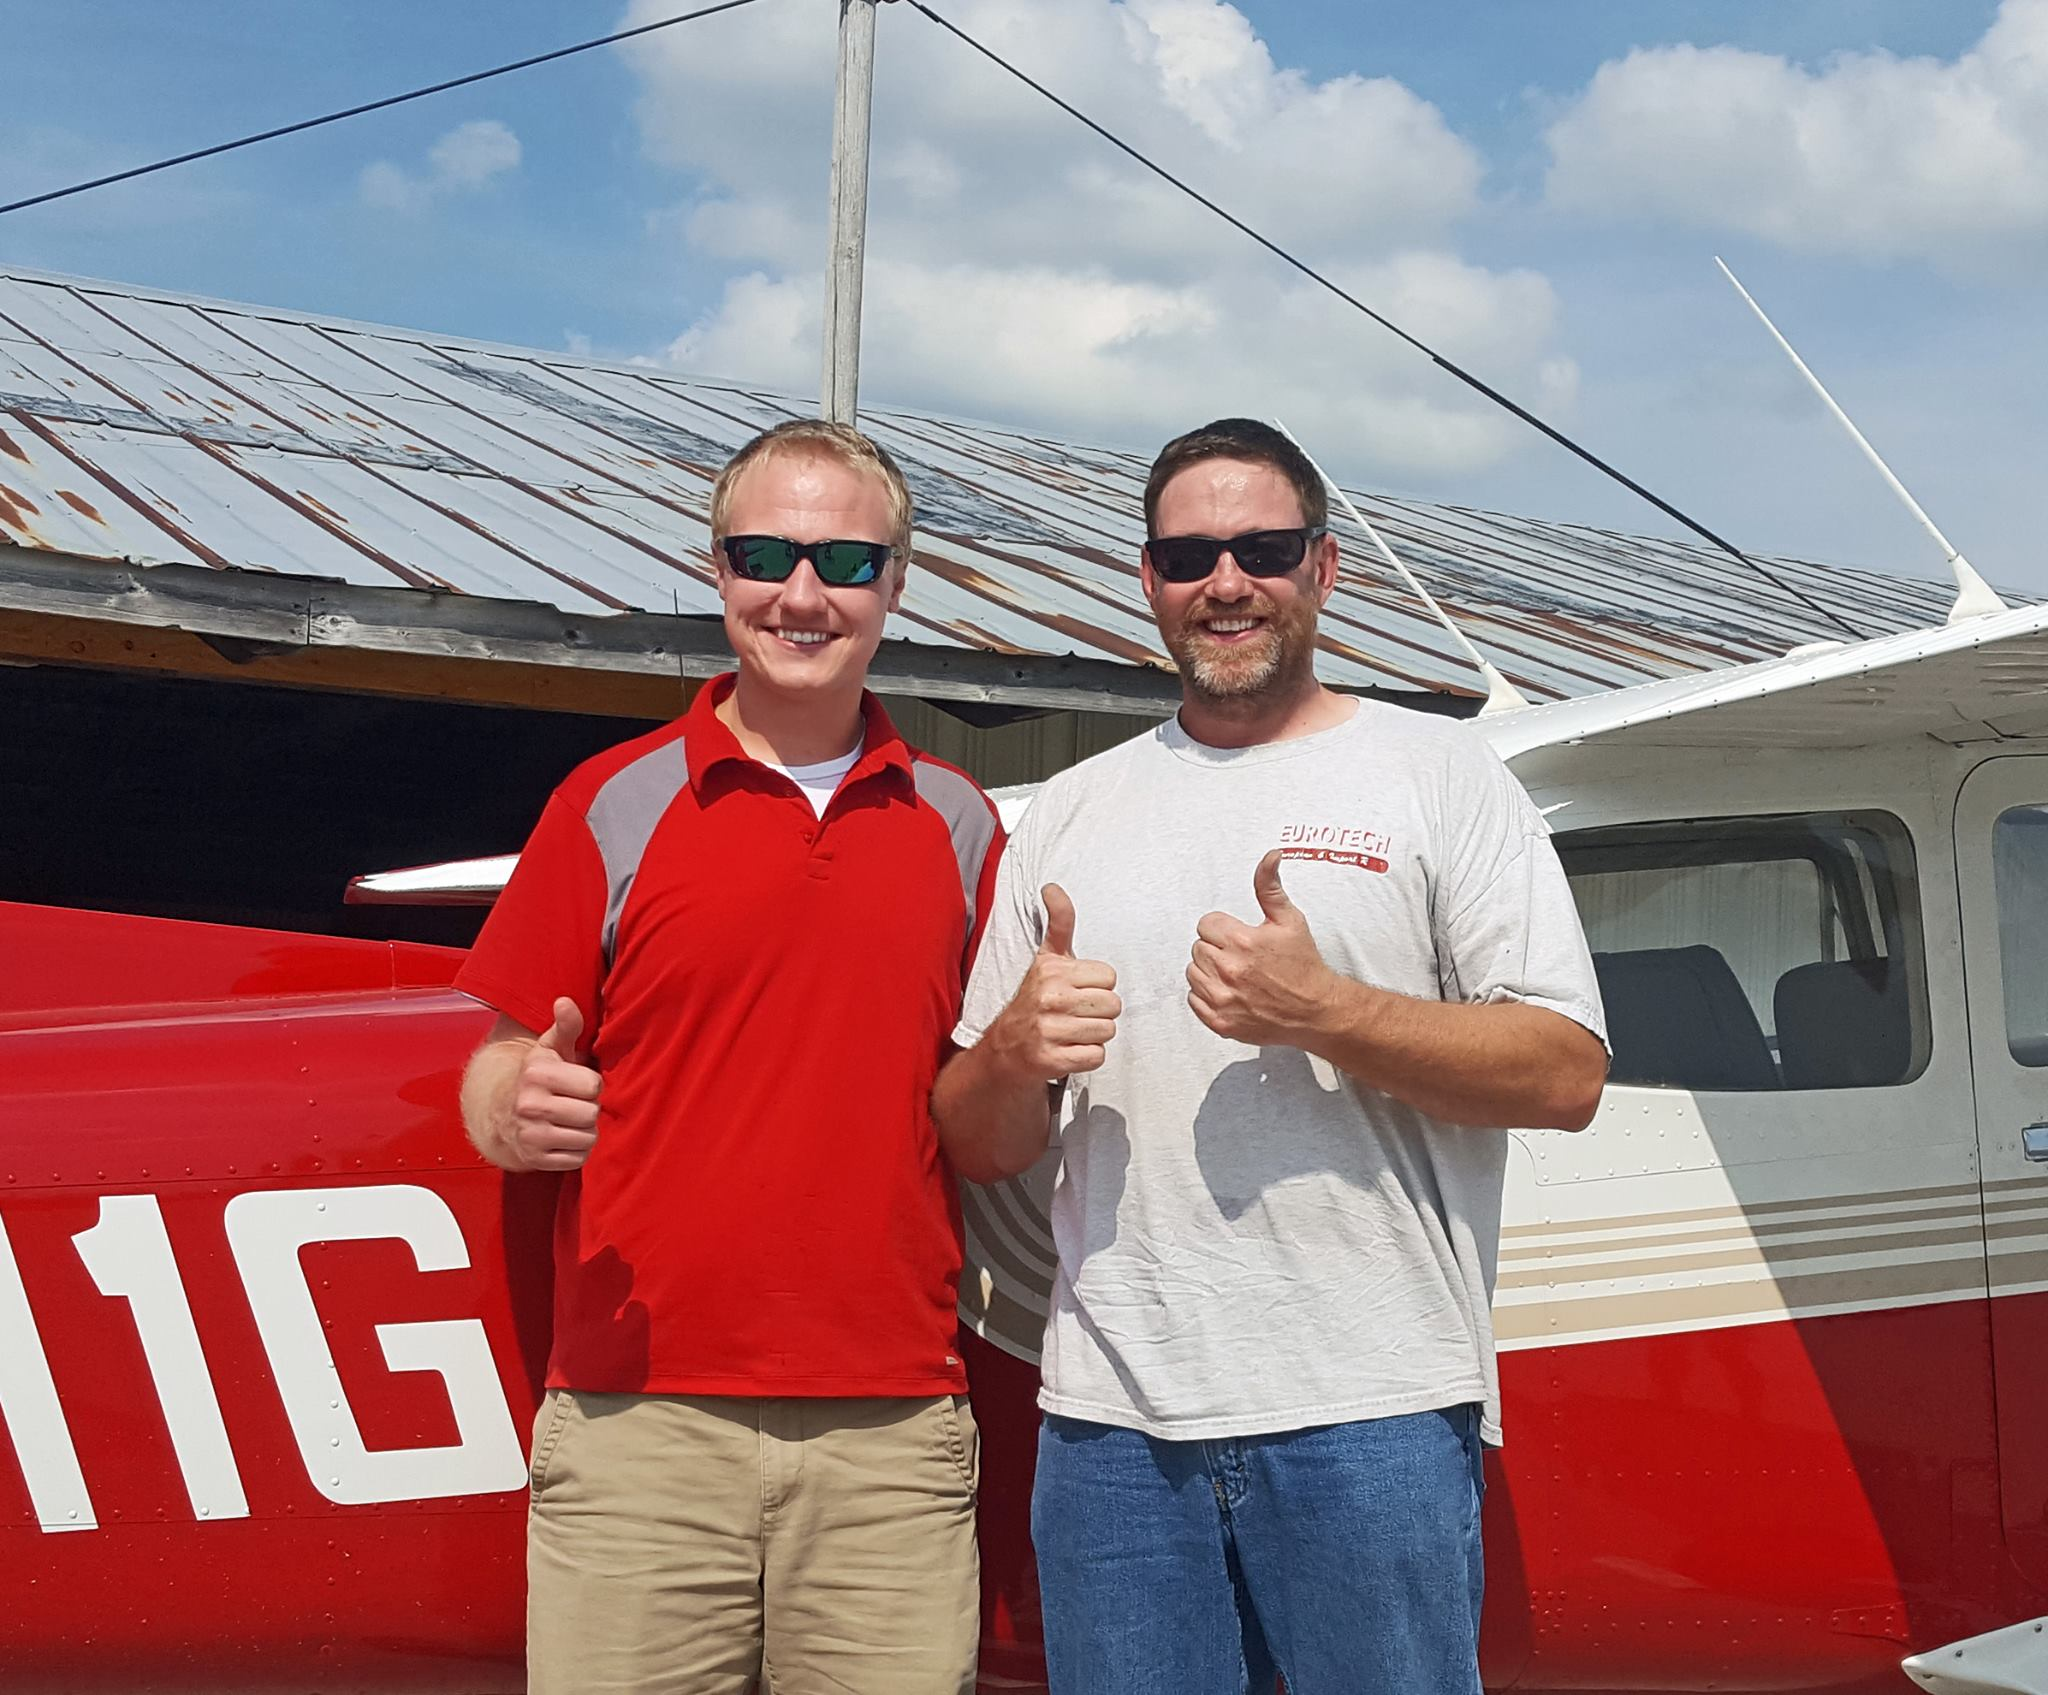 greg-edwards-poplar-grove-airport-pilot-flight-lessons